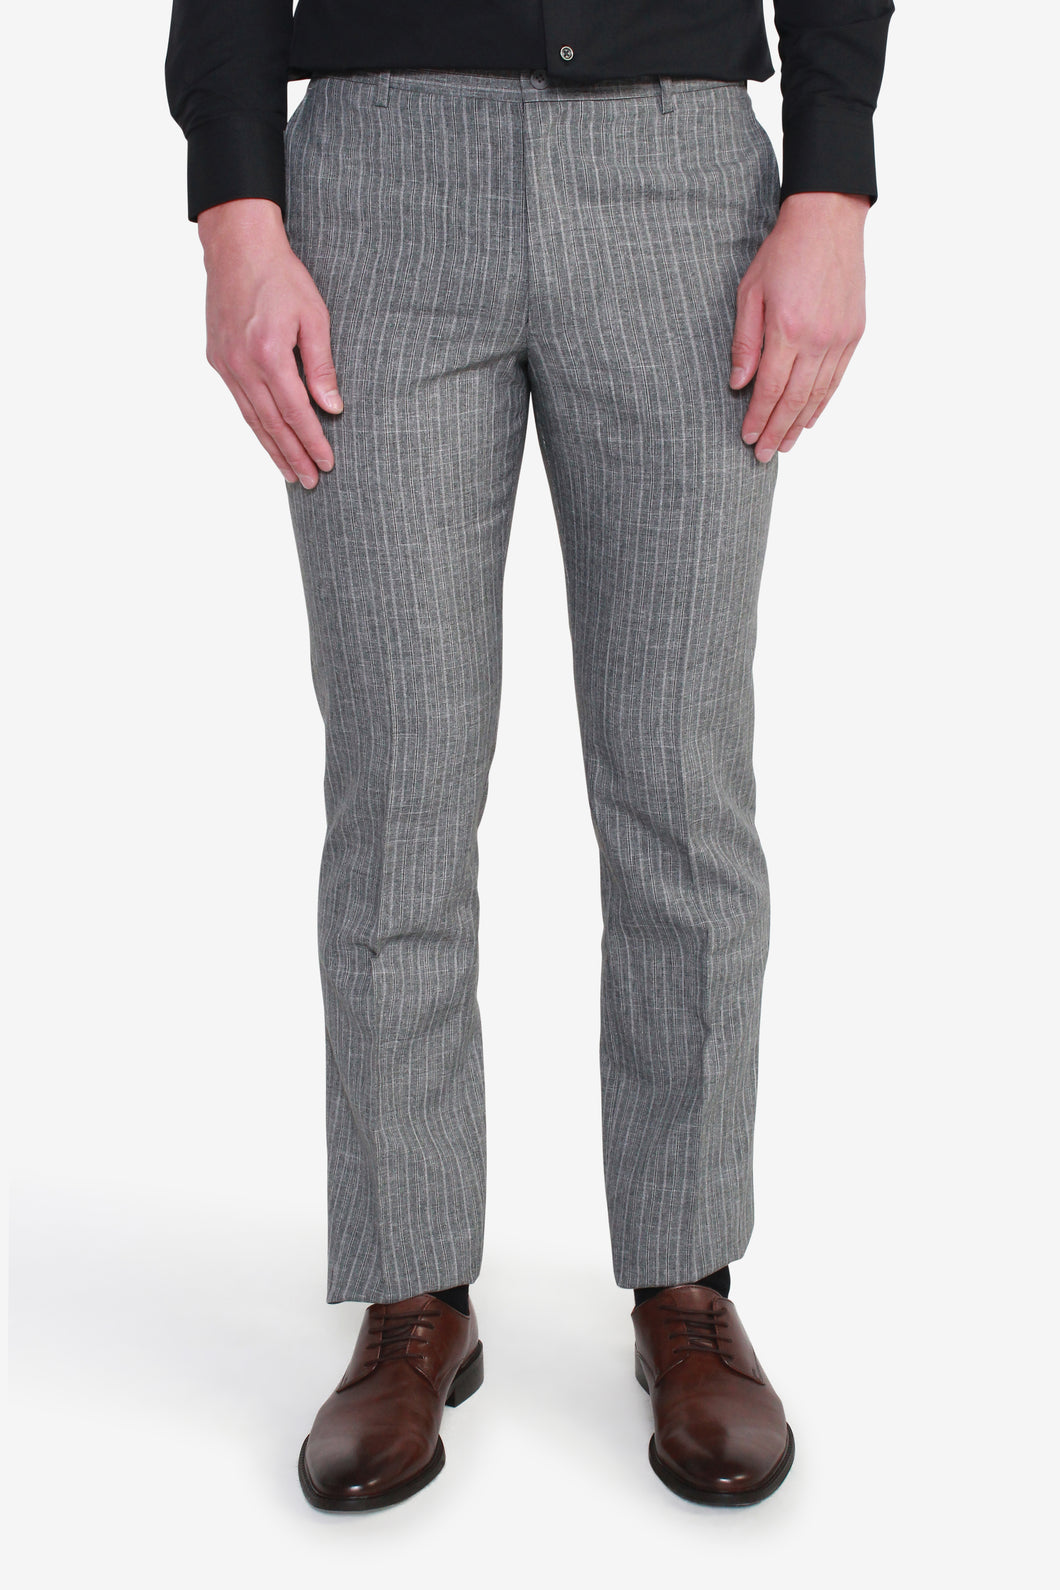 Reg Fit Grey Polyester Textured Pants